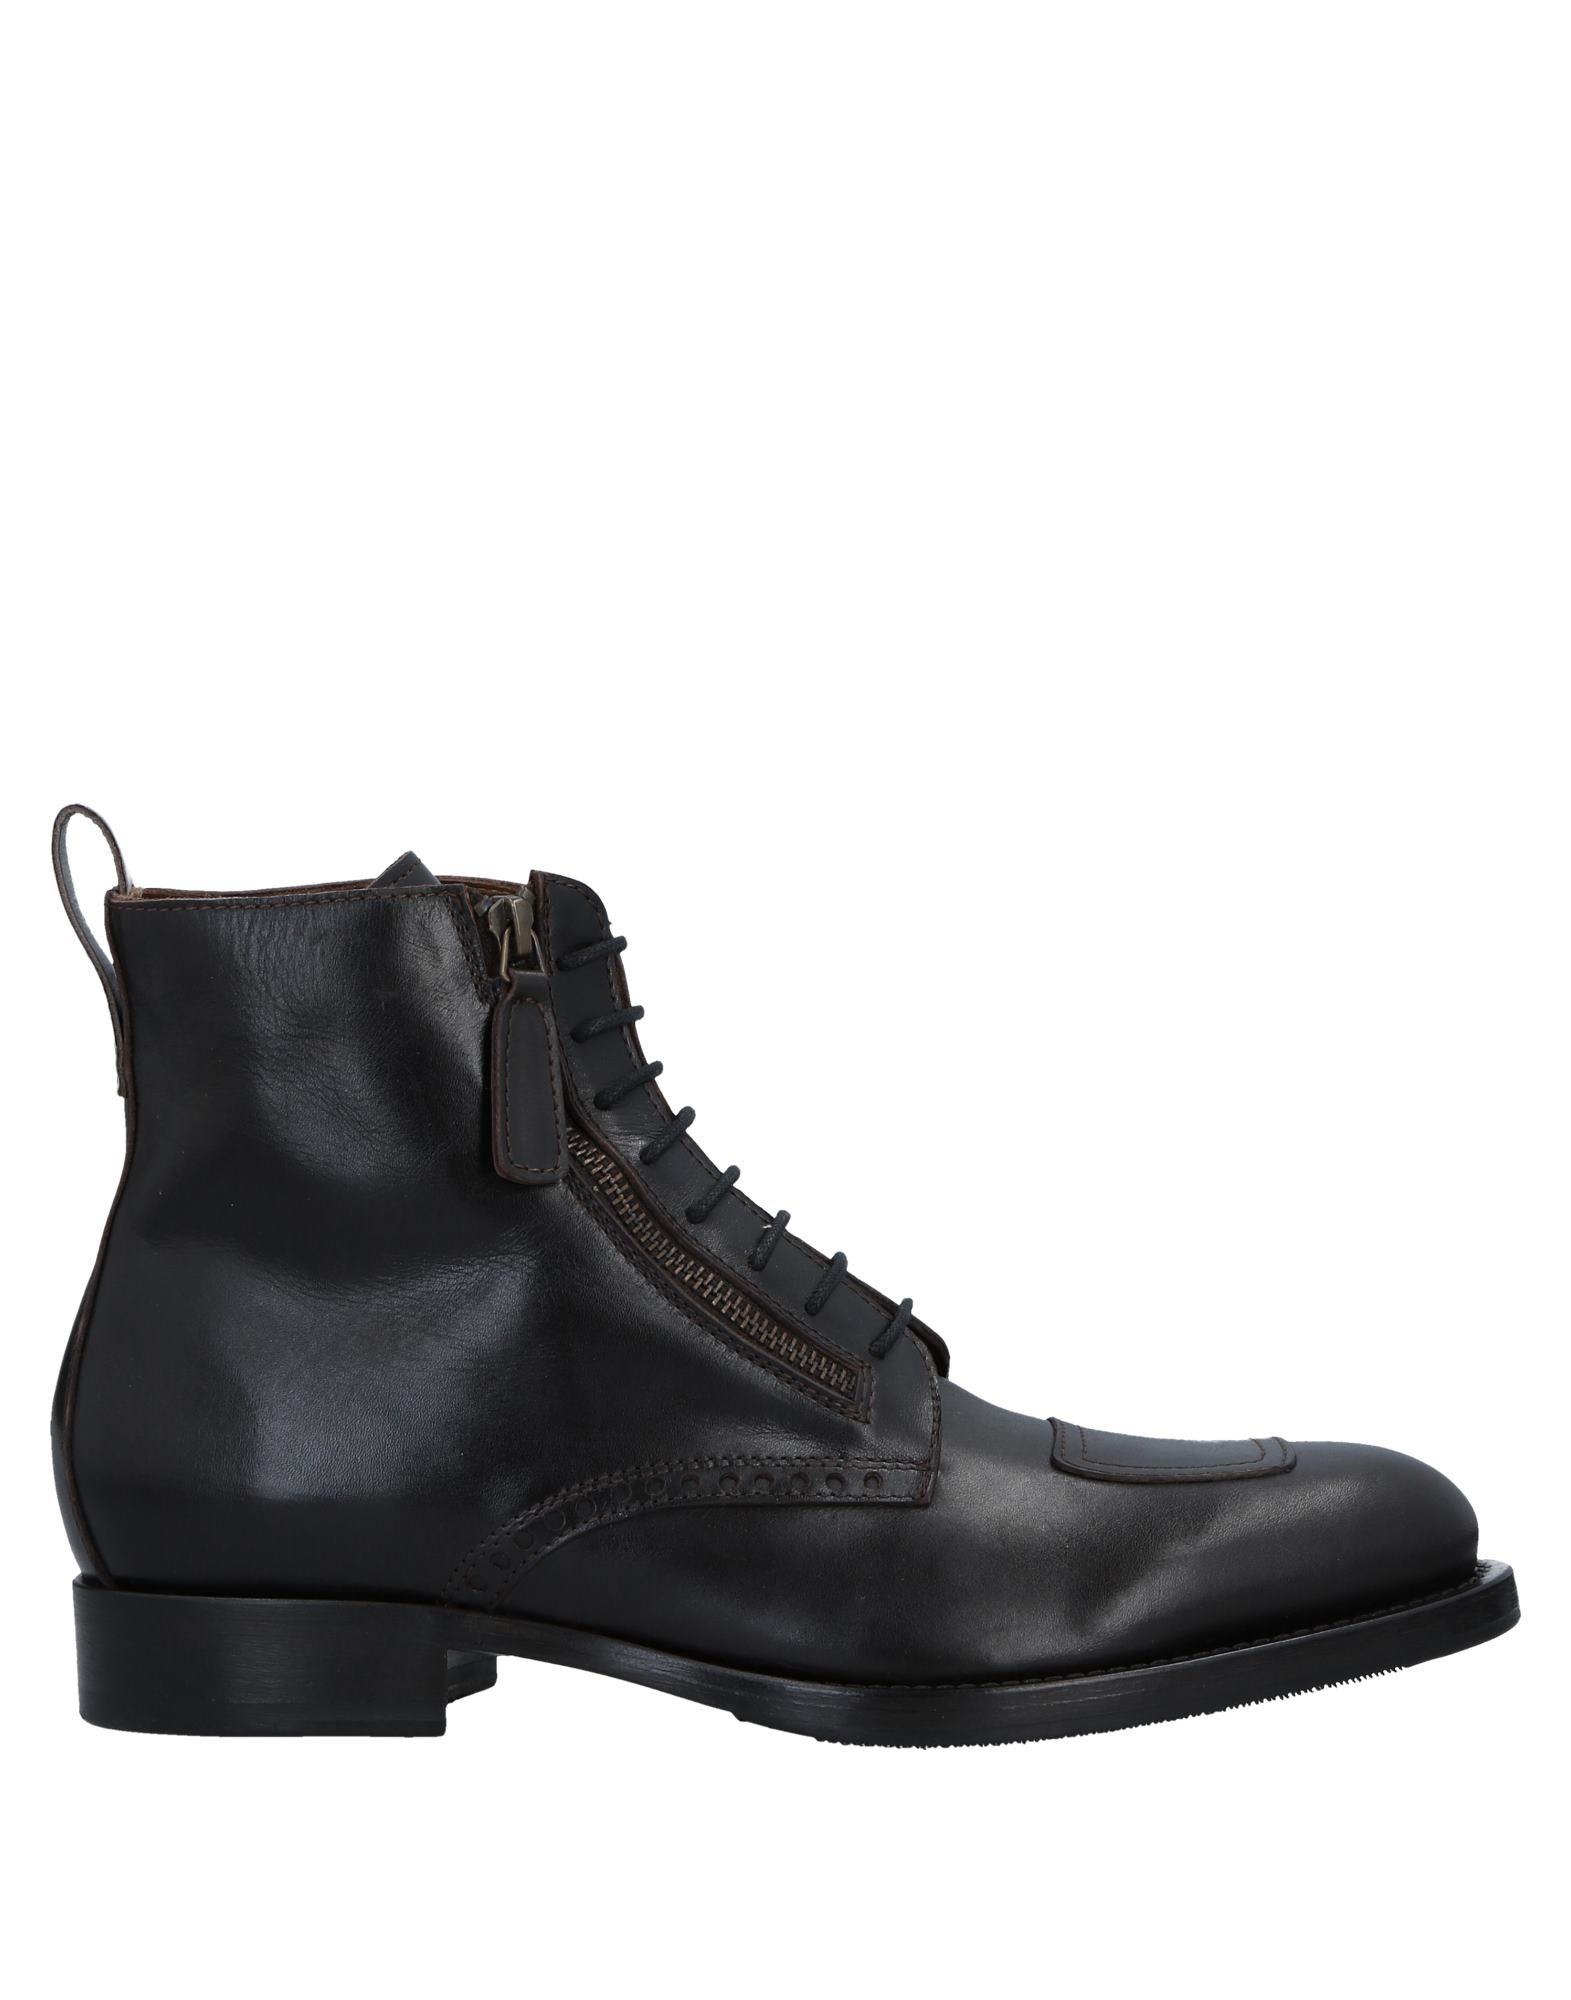 Bottine Buttero® Homme - Bottines Buttero®  Moka Meilleur modèle de vente